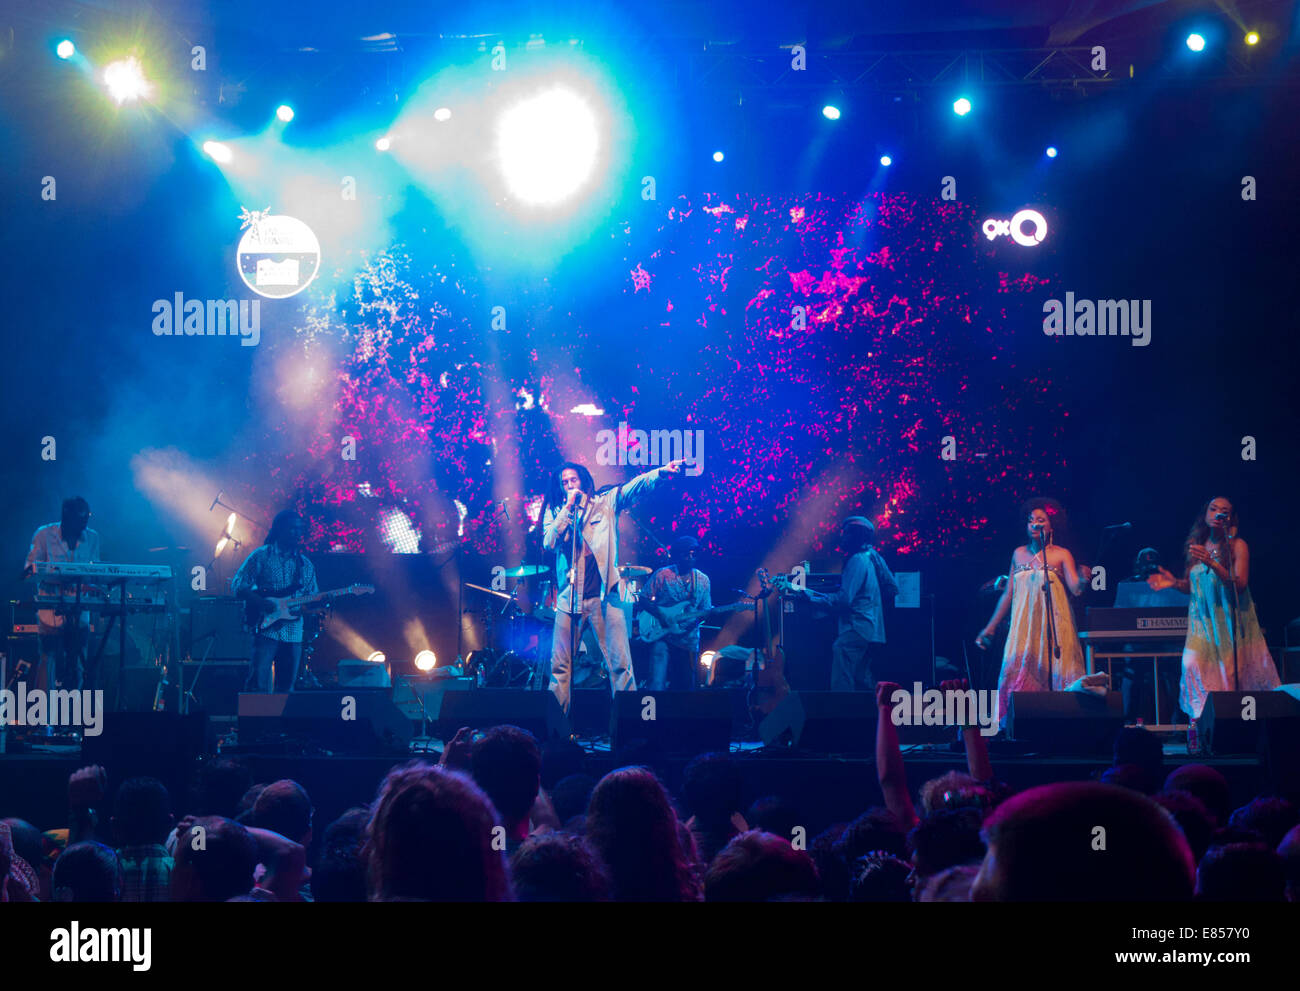 Julian Marley performing at a music festival in Goa India - Stock Image